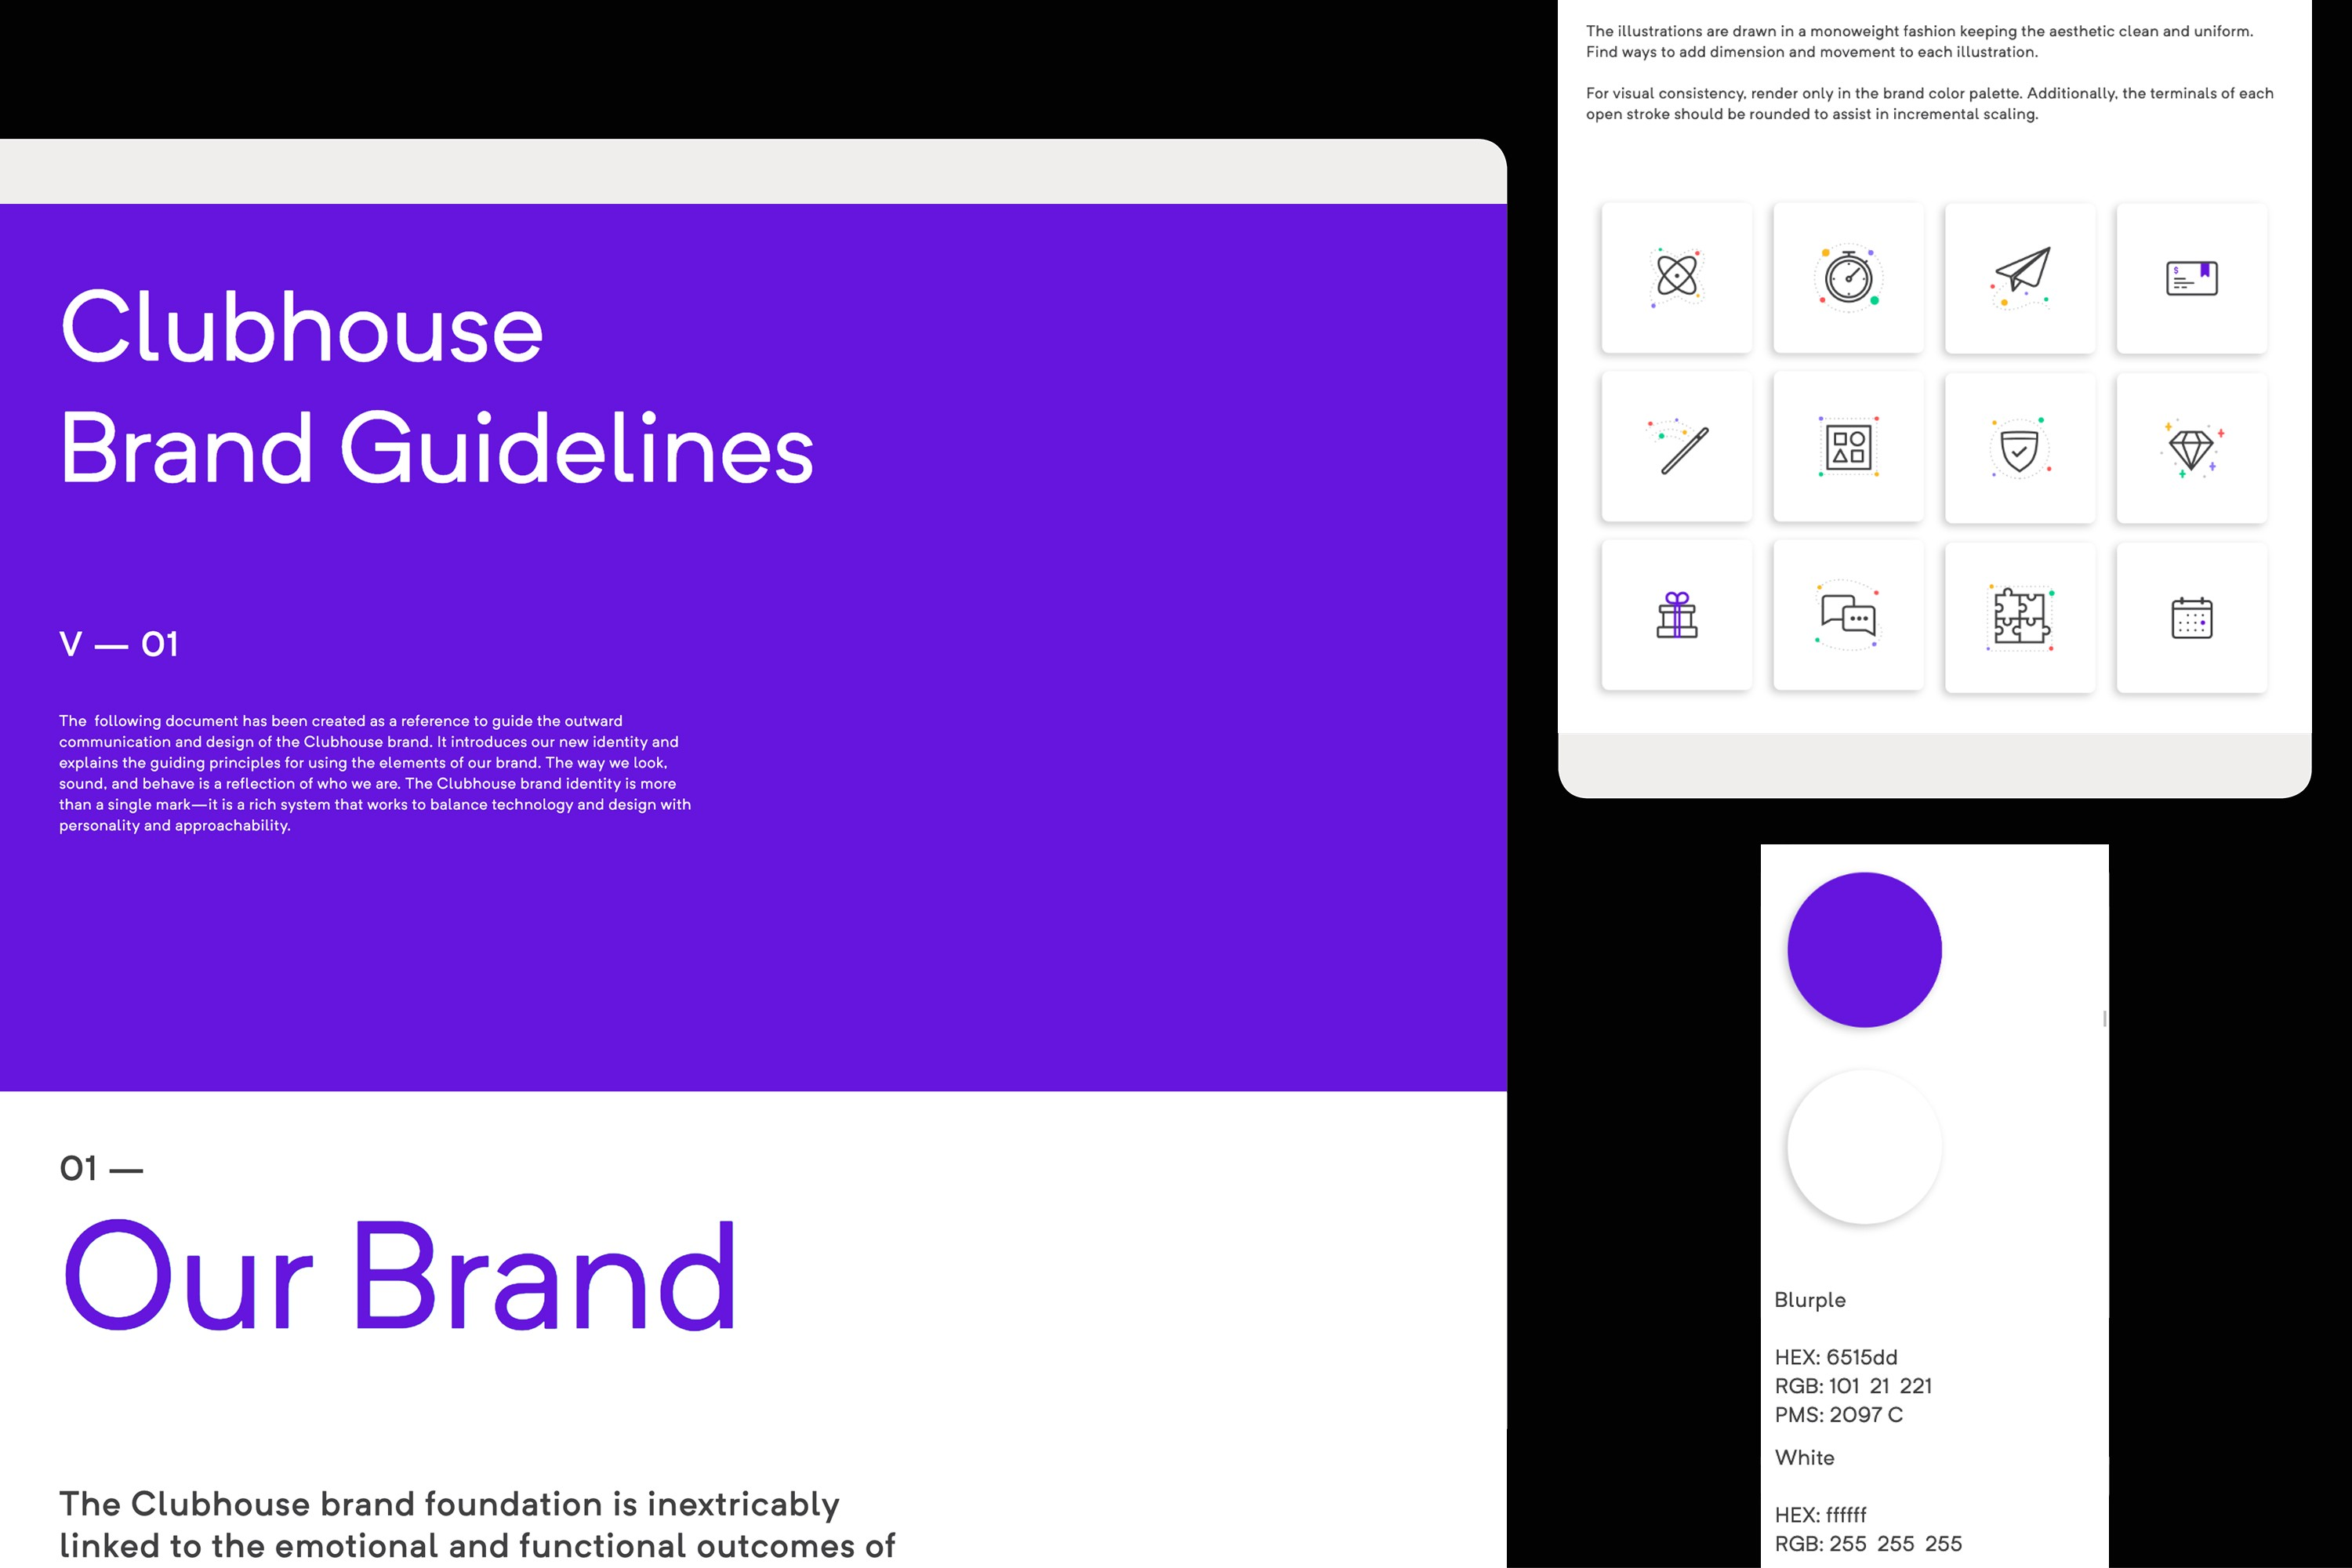 Dear Ueno: How do you make brand guidelines? - Ueno